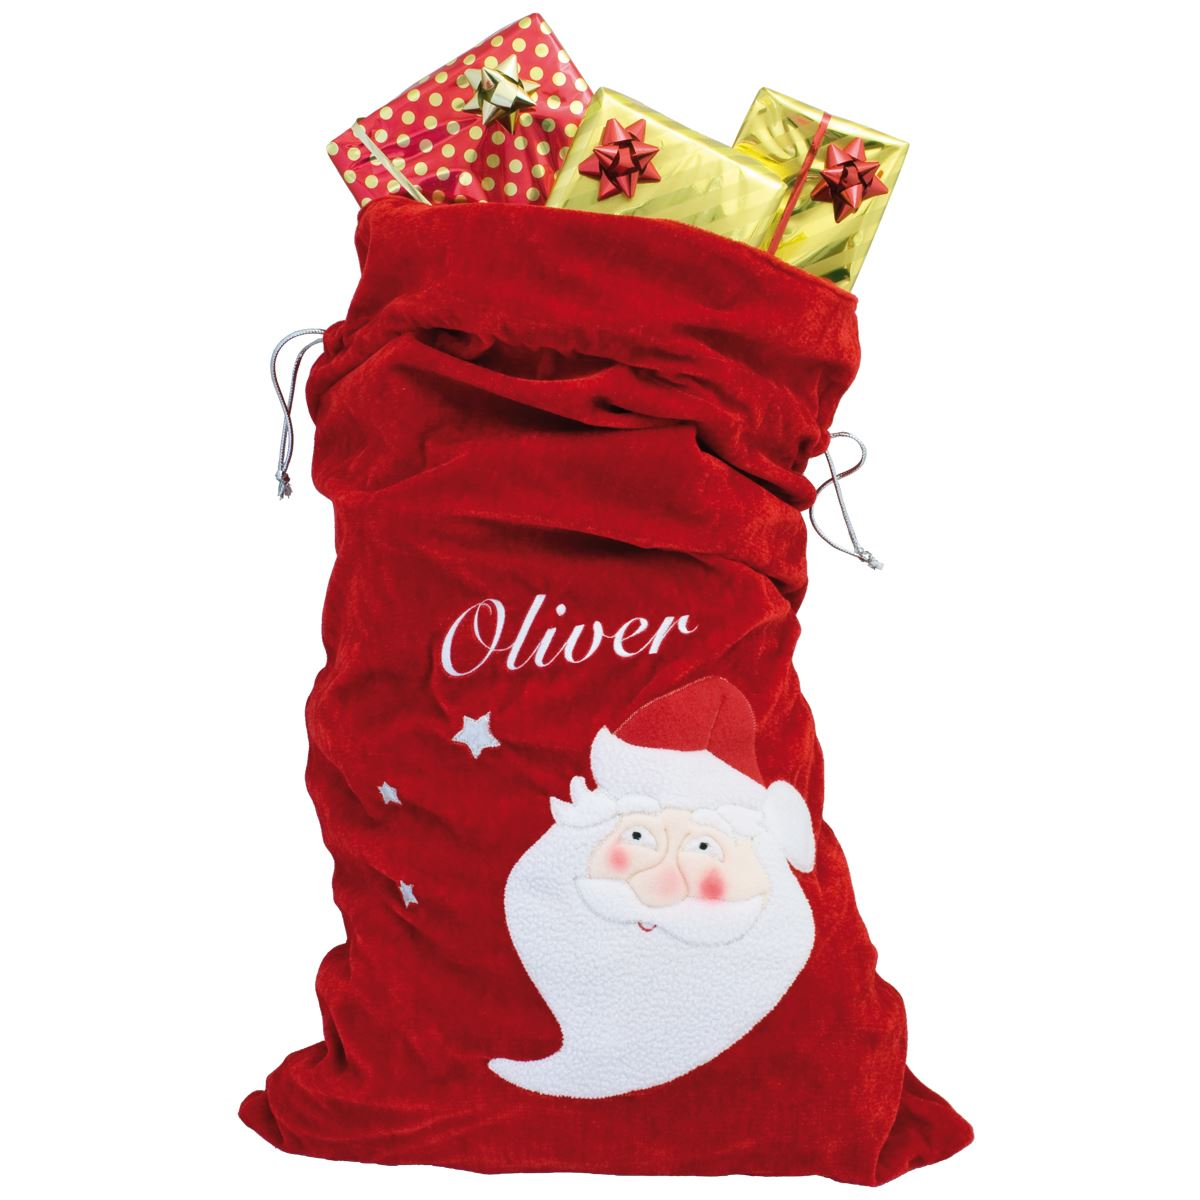 Named Christmas Sack